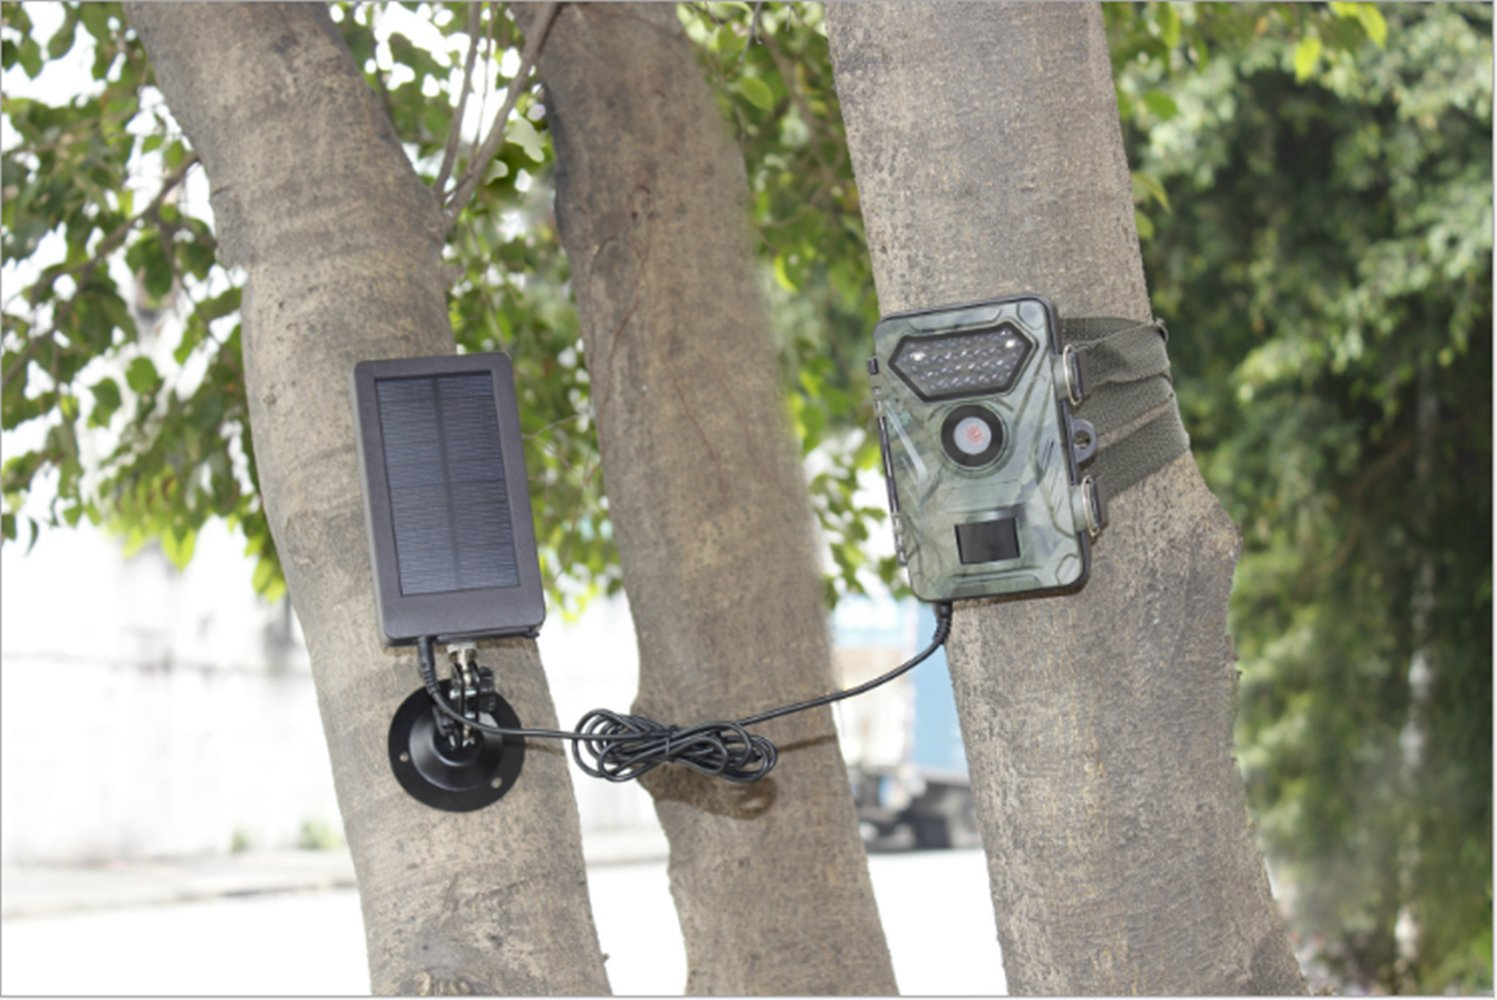 Jiee Tec SUNTEK Solar Panel 1500mah Solar Charger Battery for Hunting And Game Trail Cameras by Jiee Tec